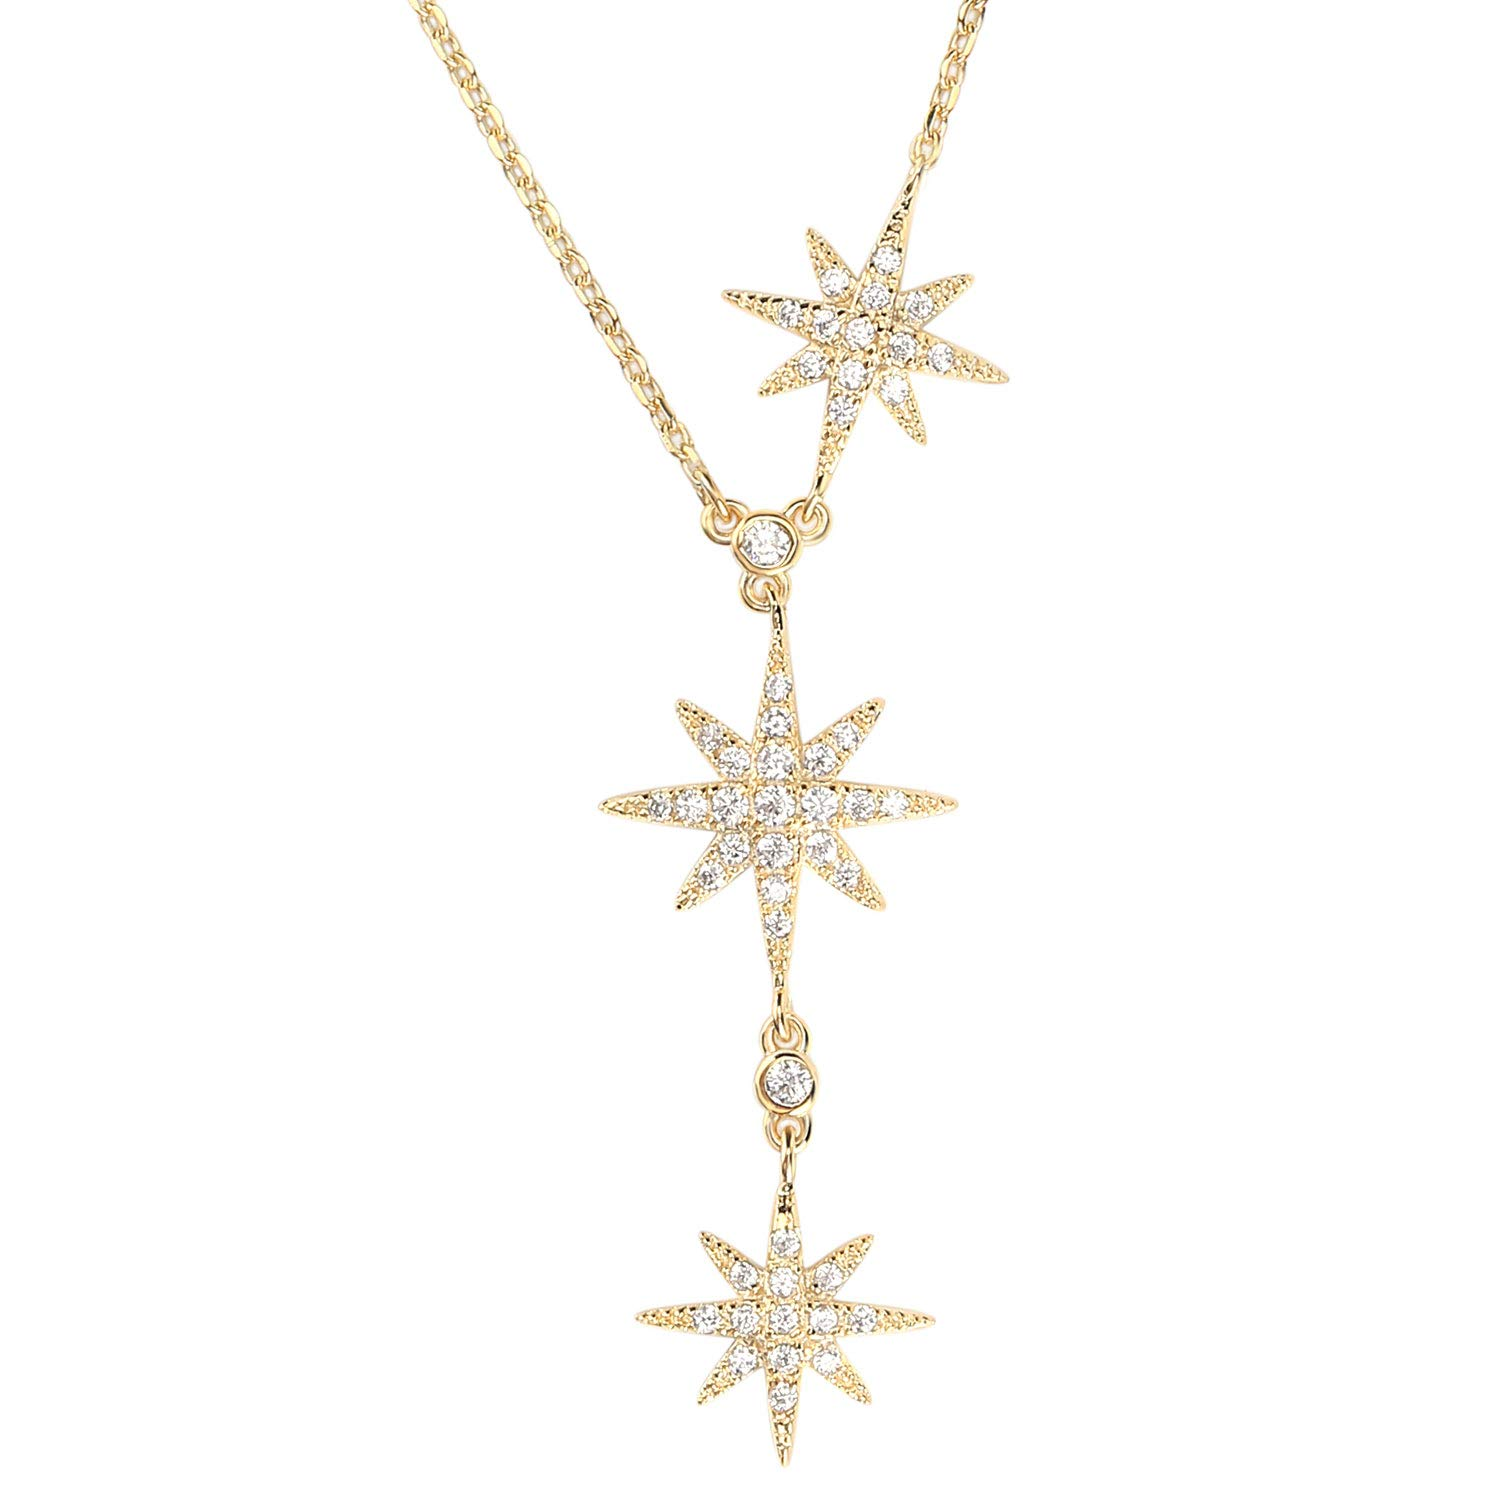 Lancharmed 925 Sterling Silver 3 Star Starburst Drop Pendant Y-Shaped Paved CZ Necklace for Women Girls Teens